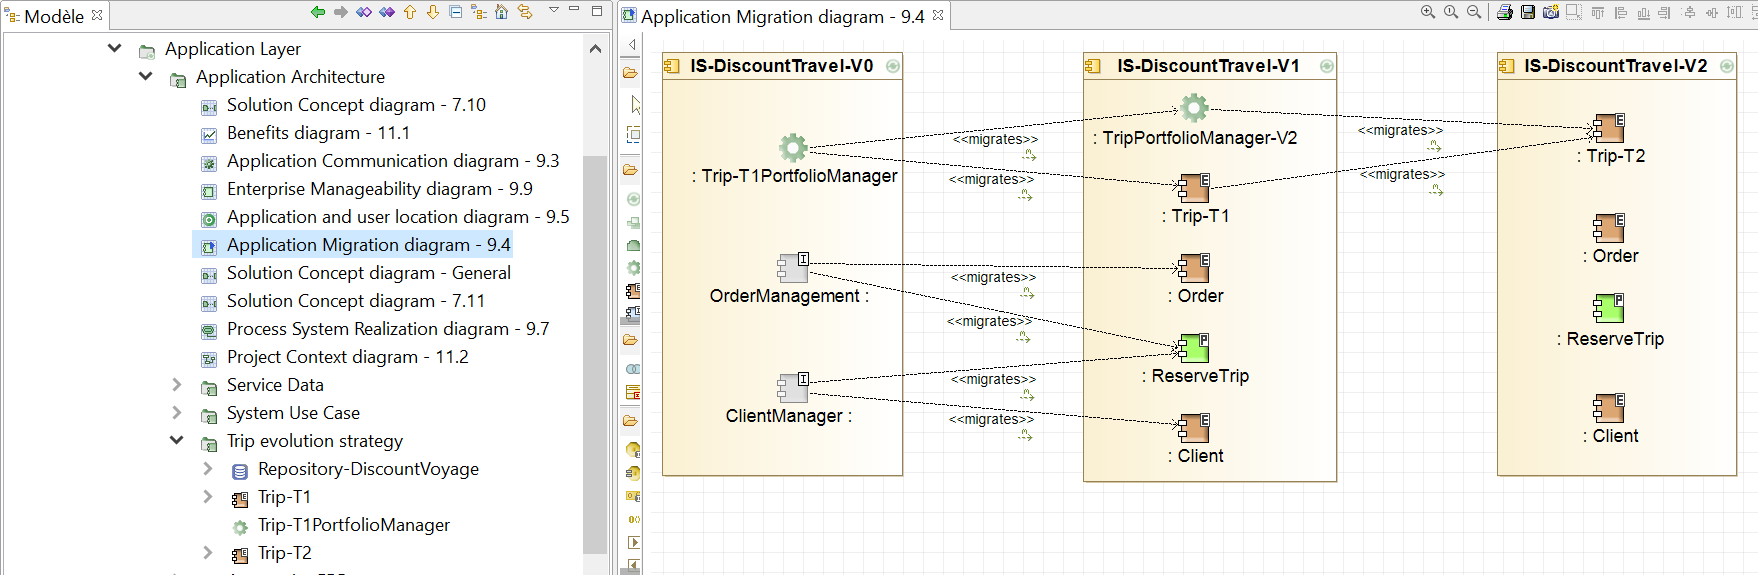 diagramme-de-migration-applicative-togaf-phase-c-architecture-systemes-d-information-tutorial.PNG